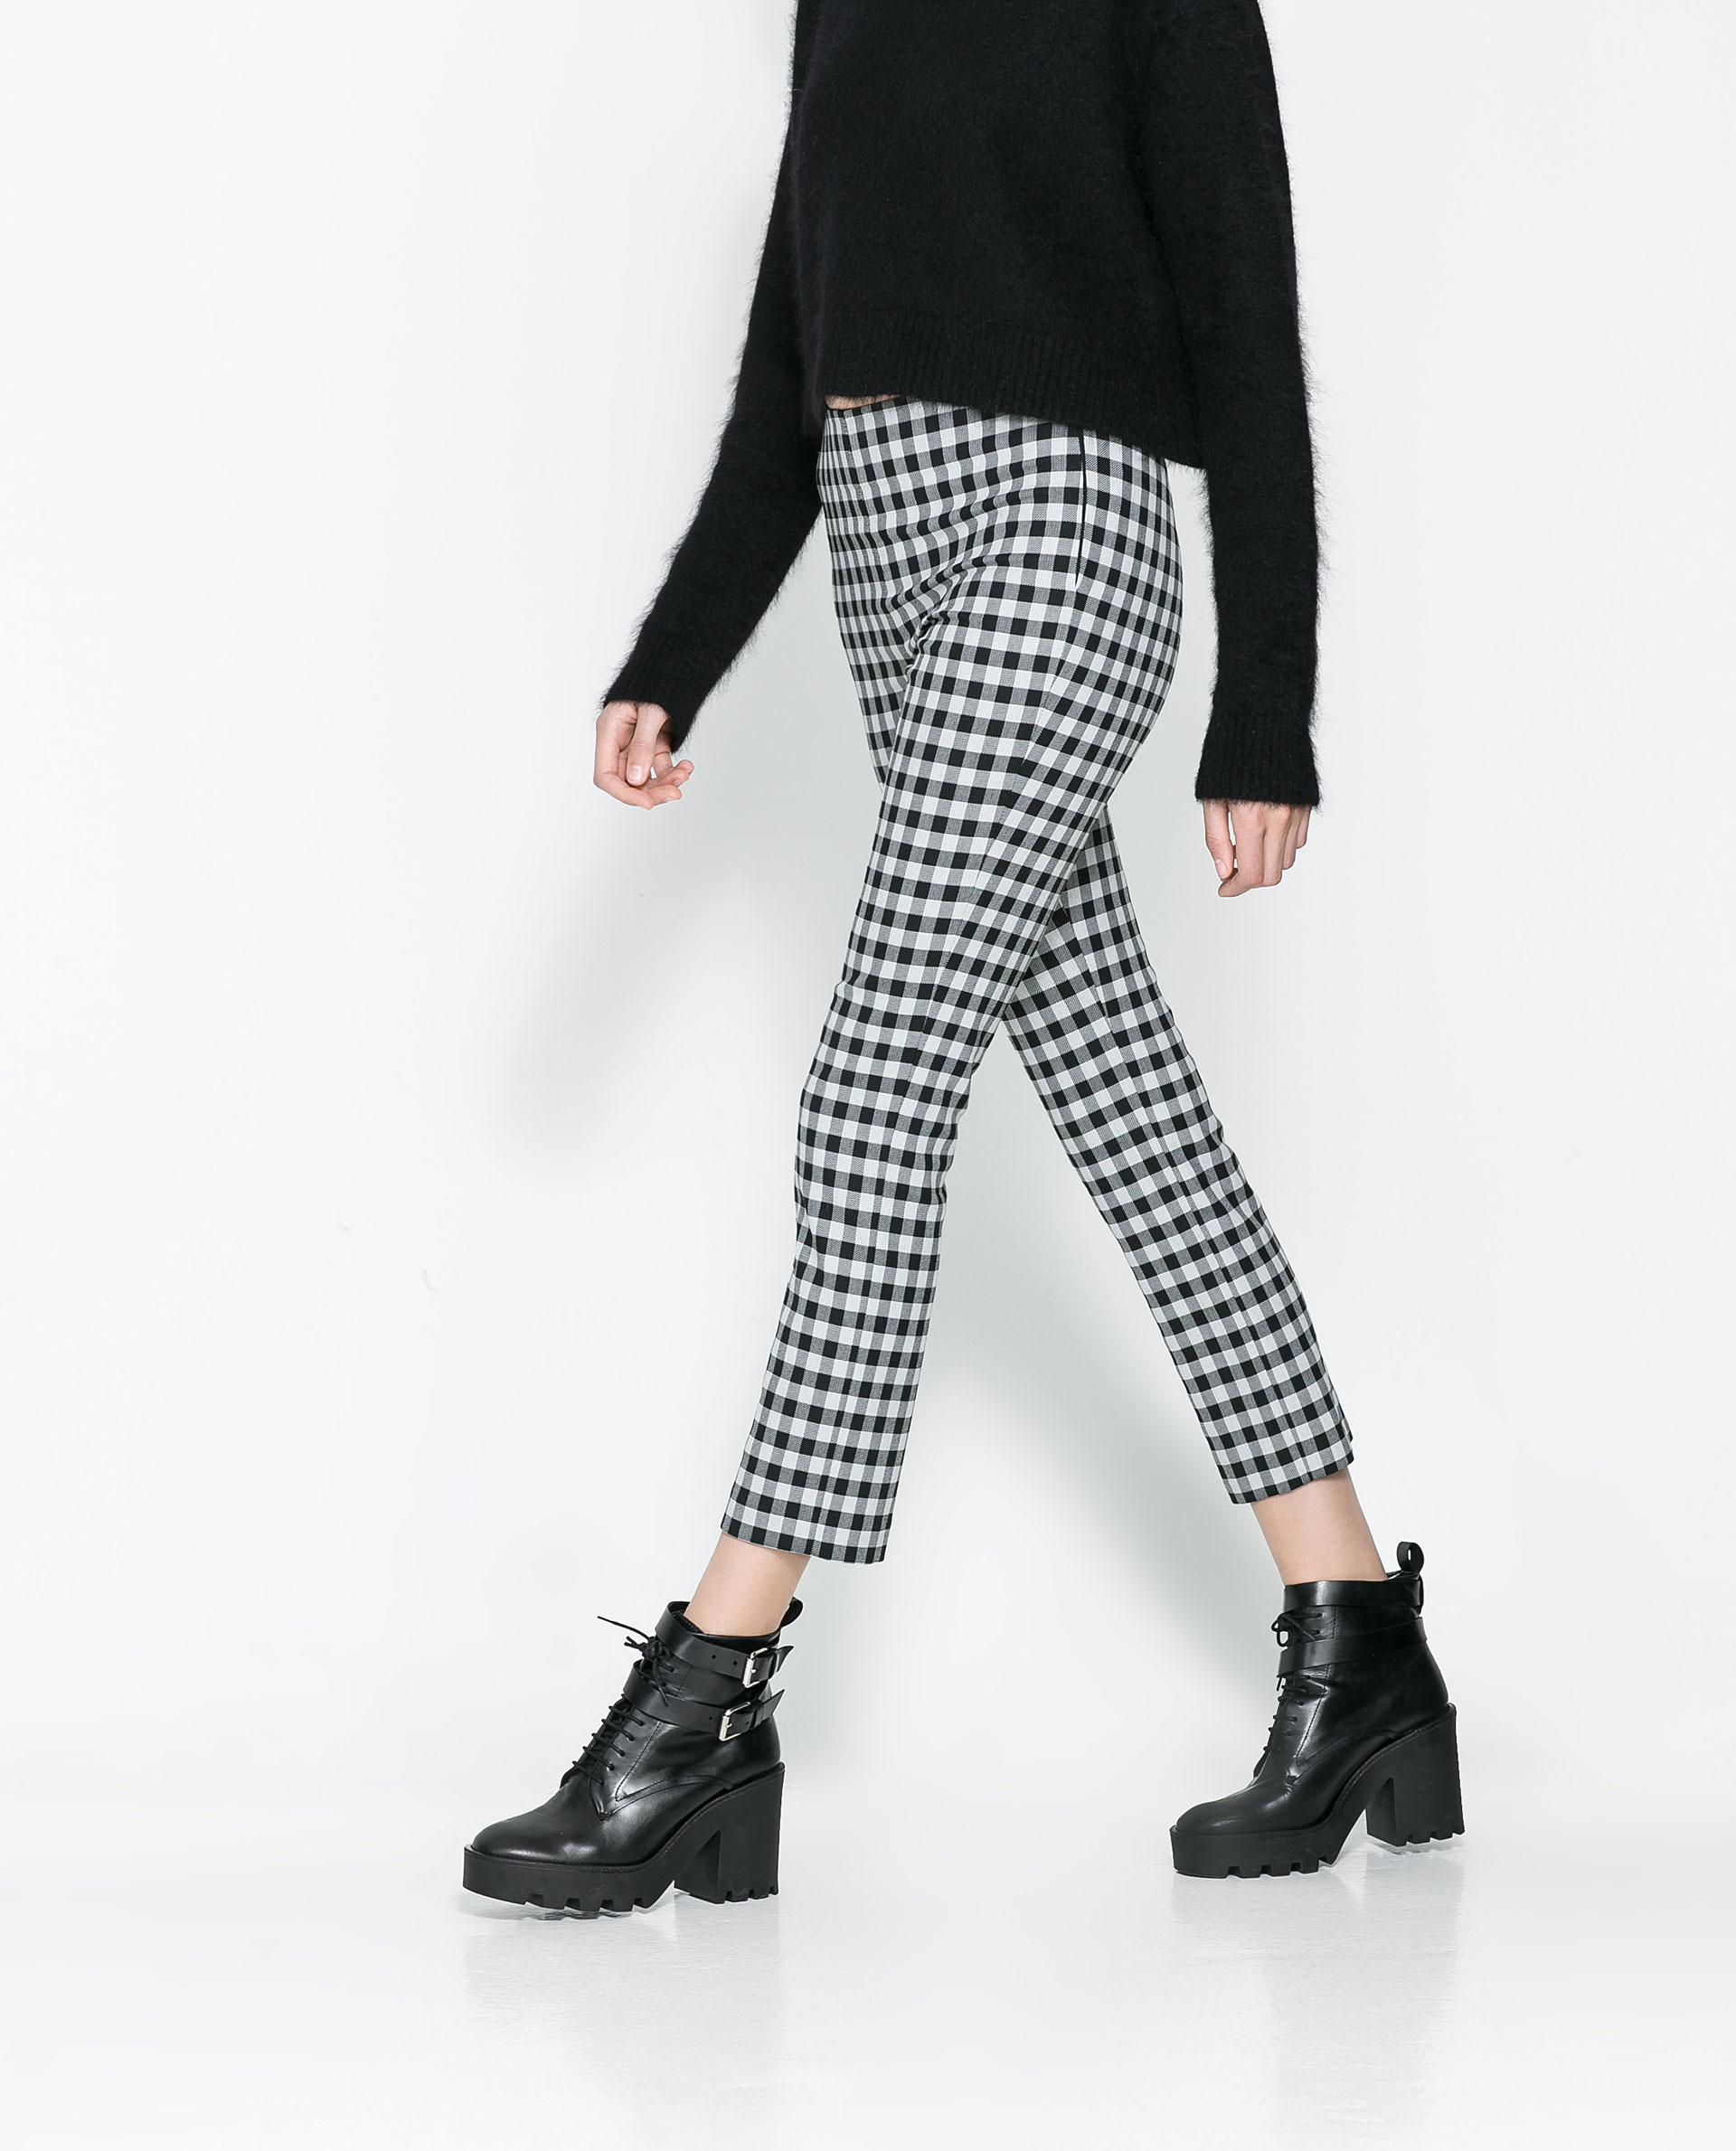 Find great deals on eBay for black and white checkered pants. Shop with confidence.